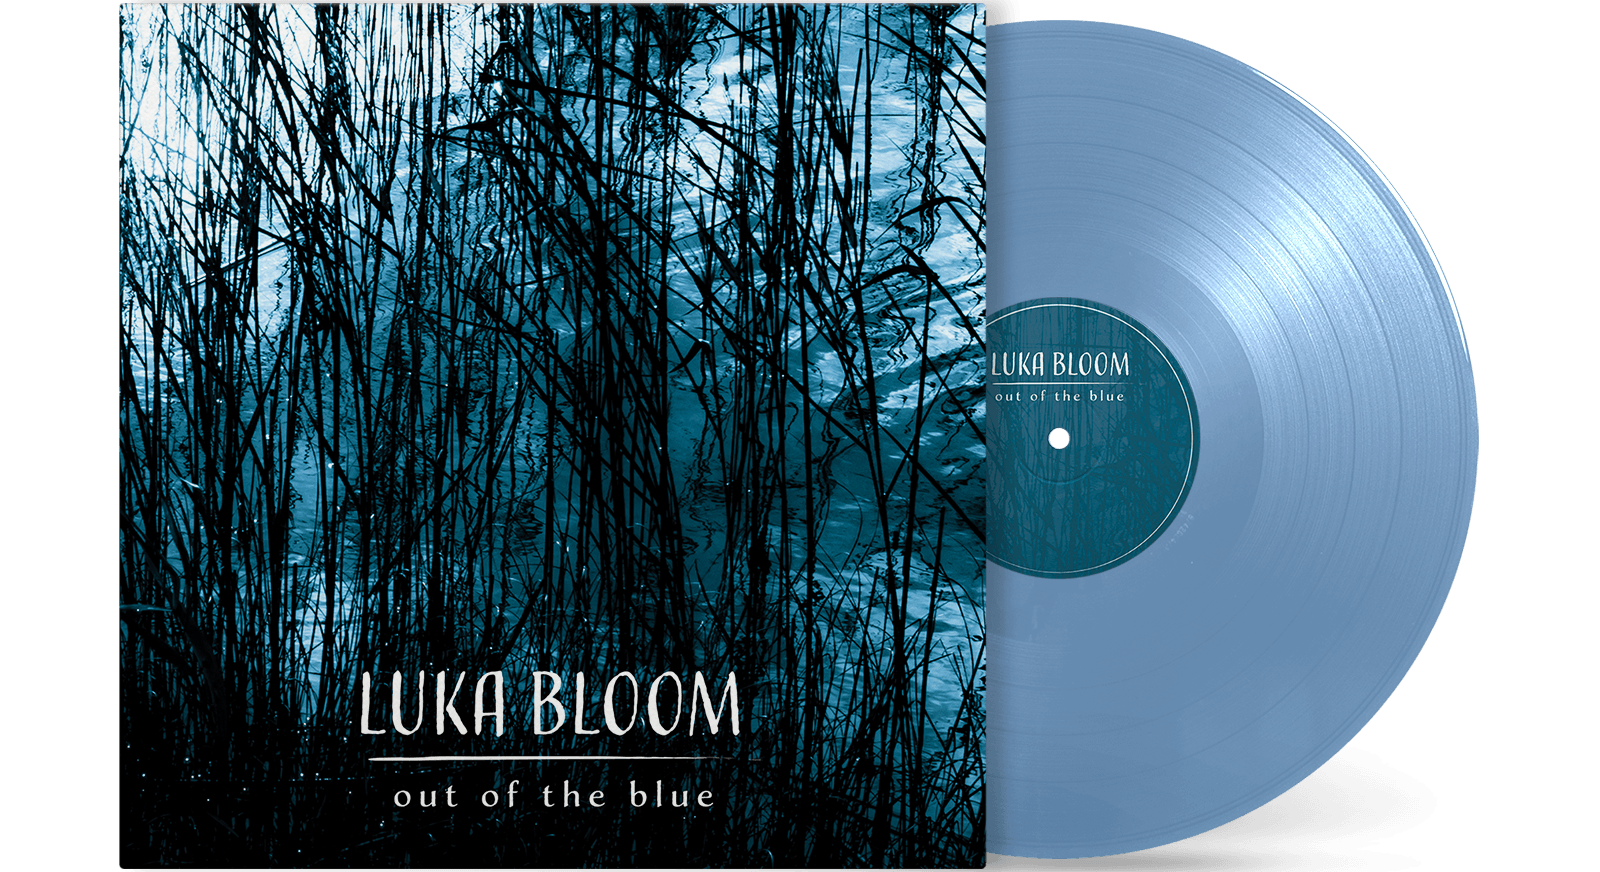 [PRE-ORDER] Luka Bloom - Out of the Blue [Transparent Blue Vinyl]